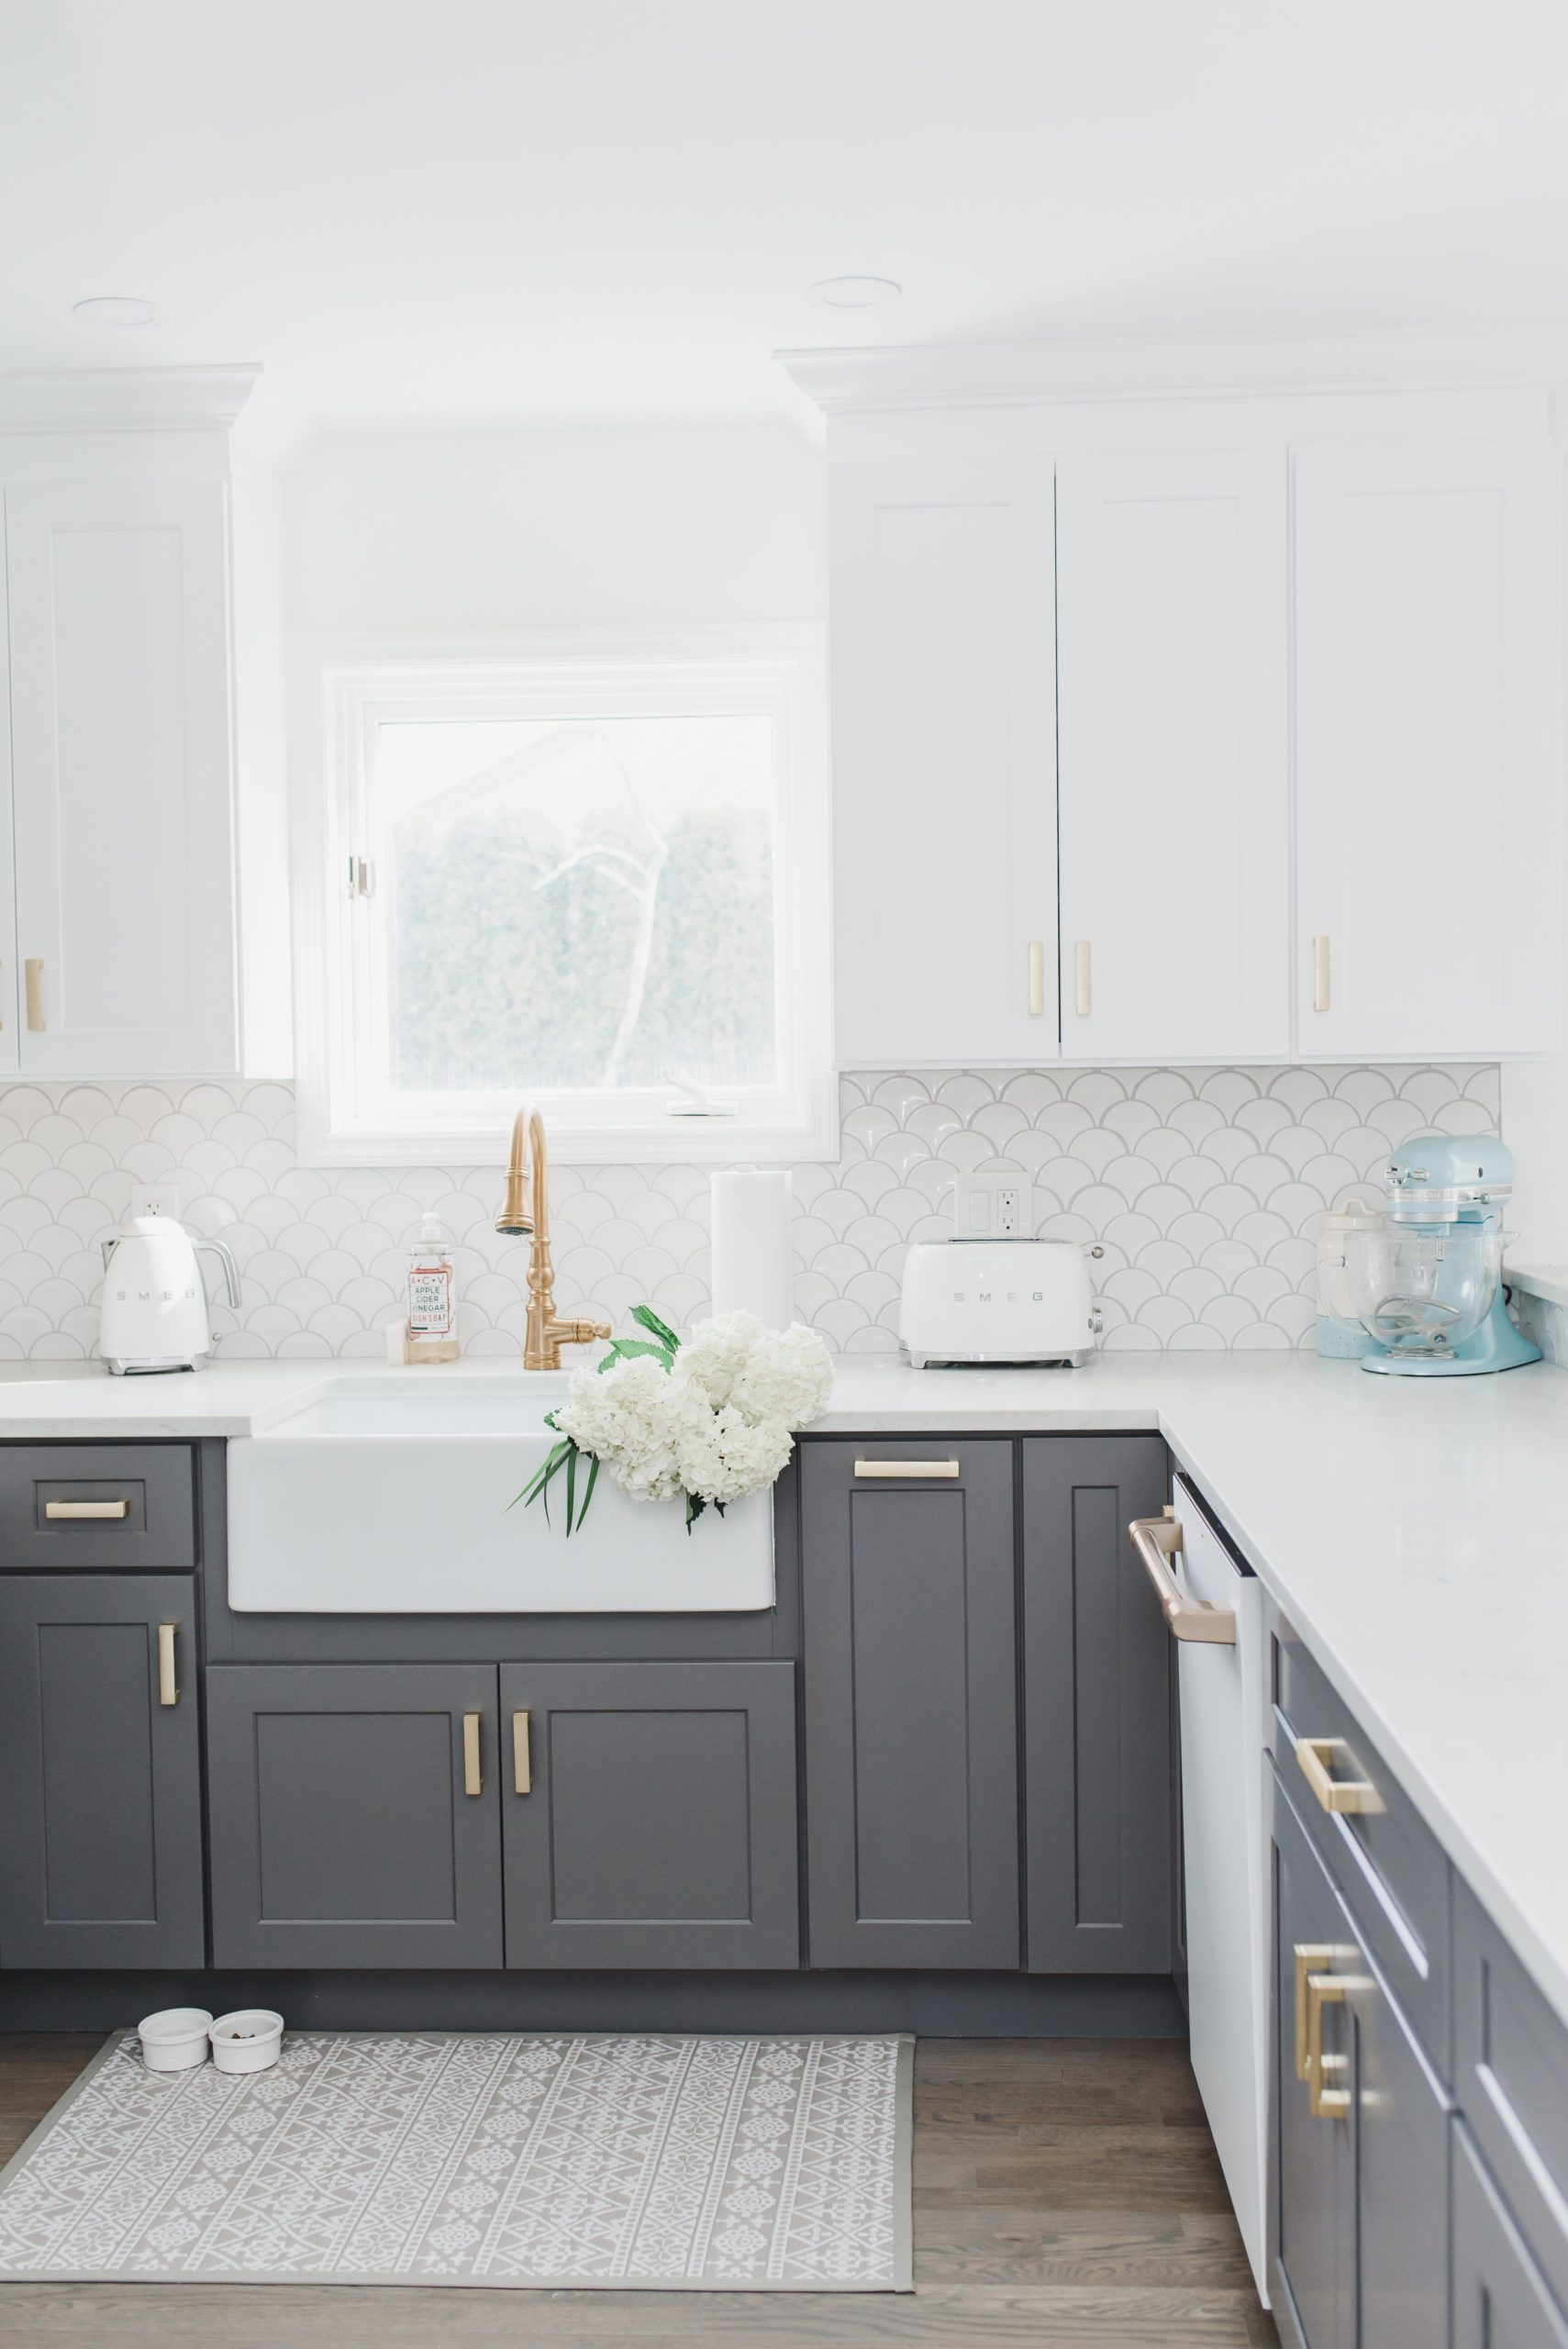 A Coastal Kitchen Renovation with Two-Toned Kitchen Cabinets with blogger, Helen of Style Inherited